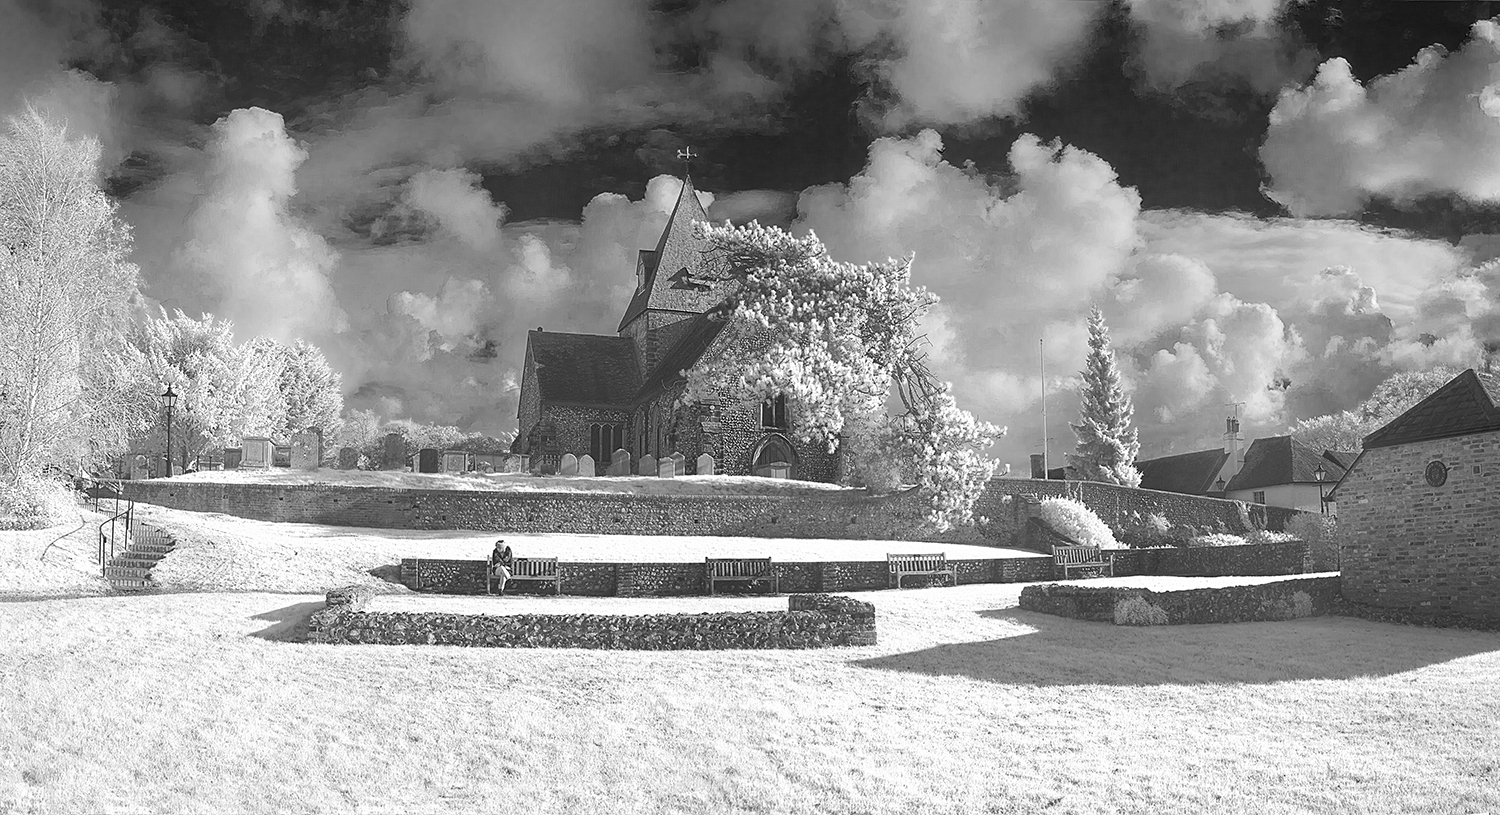 Ditchling Church 0304 - 0307